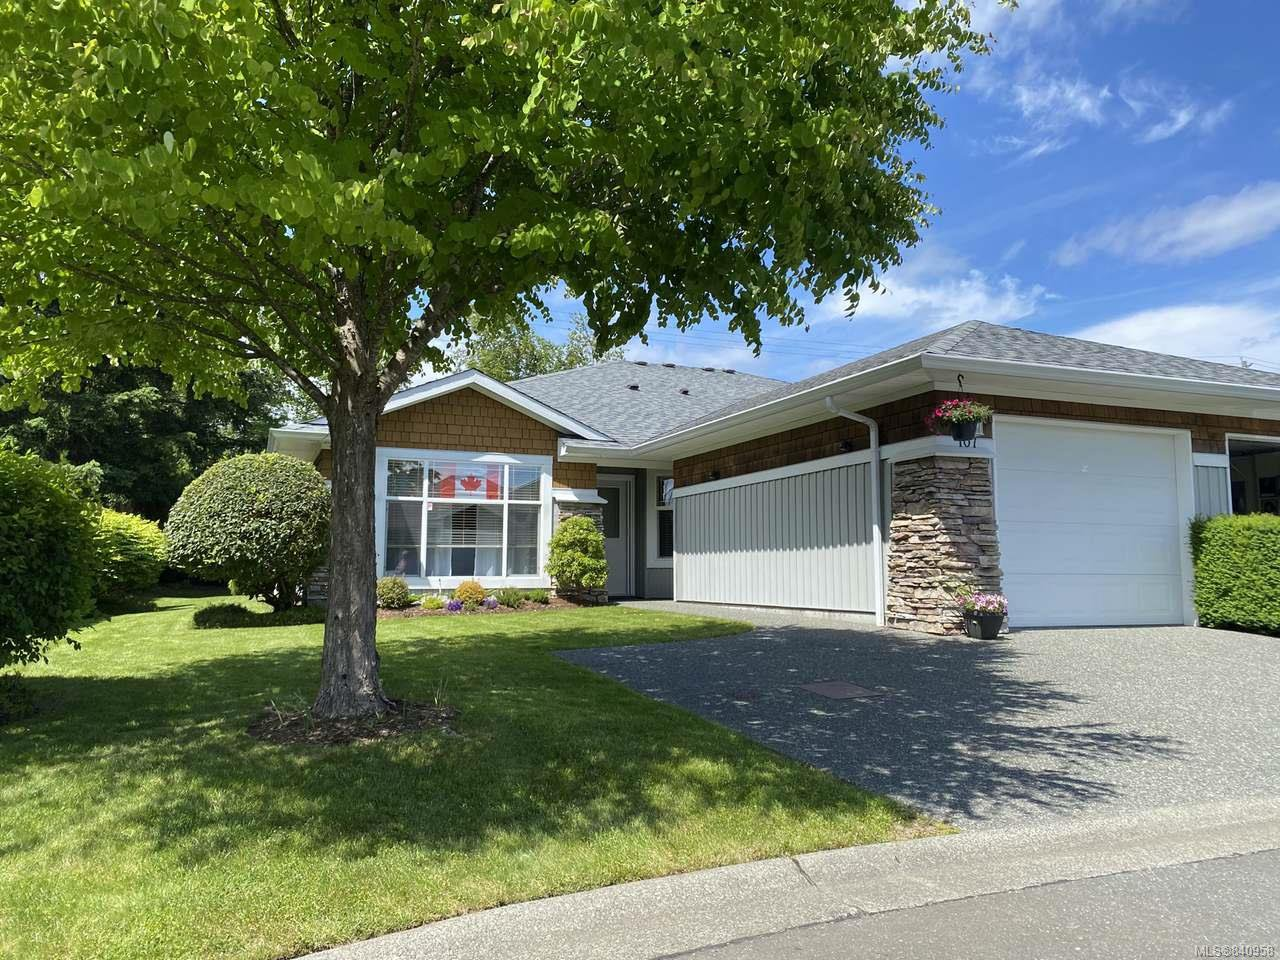 Main Photo: 107 1919 St Andrews Pl in COURTENAY: CV Courtenay East Row/Townhouse for sale (Comox Valley)  : MLS®# 840958